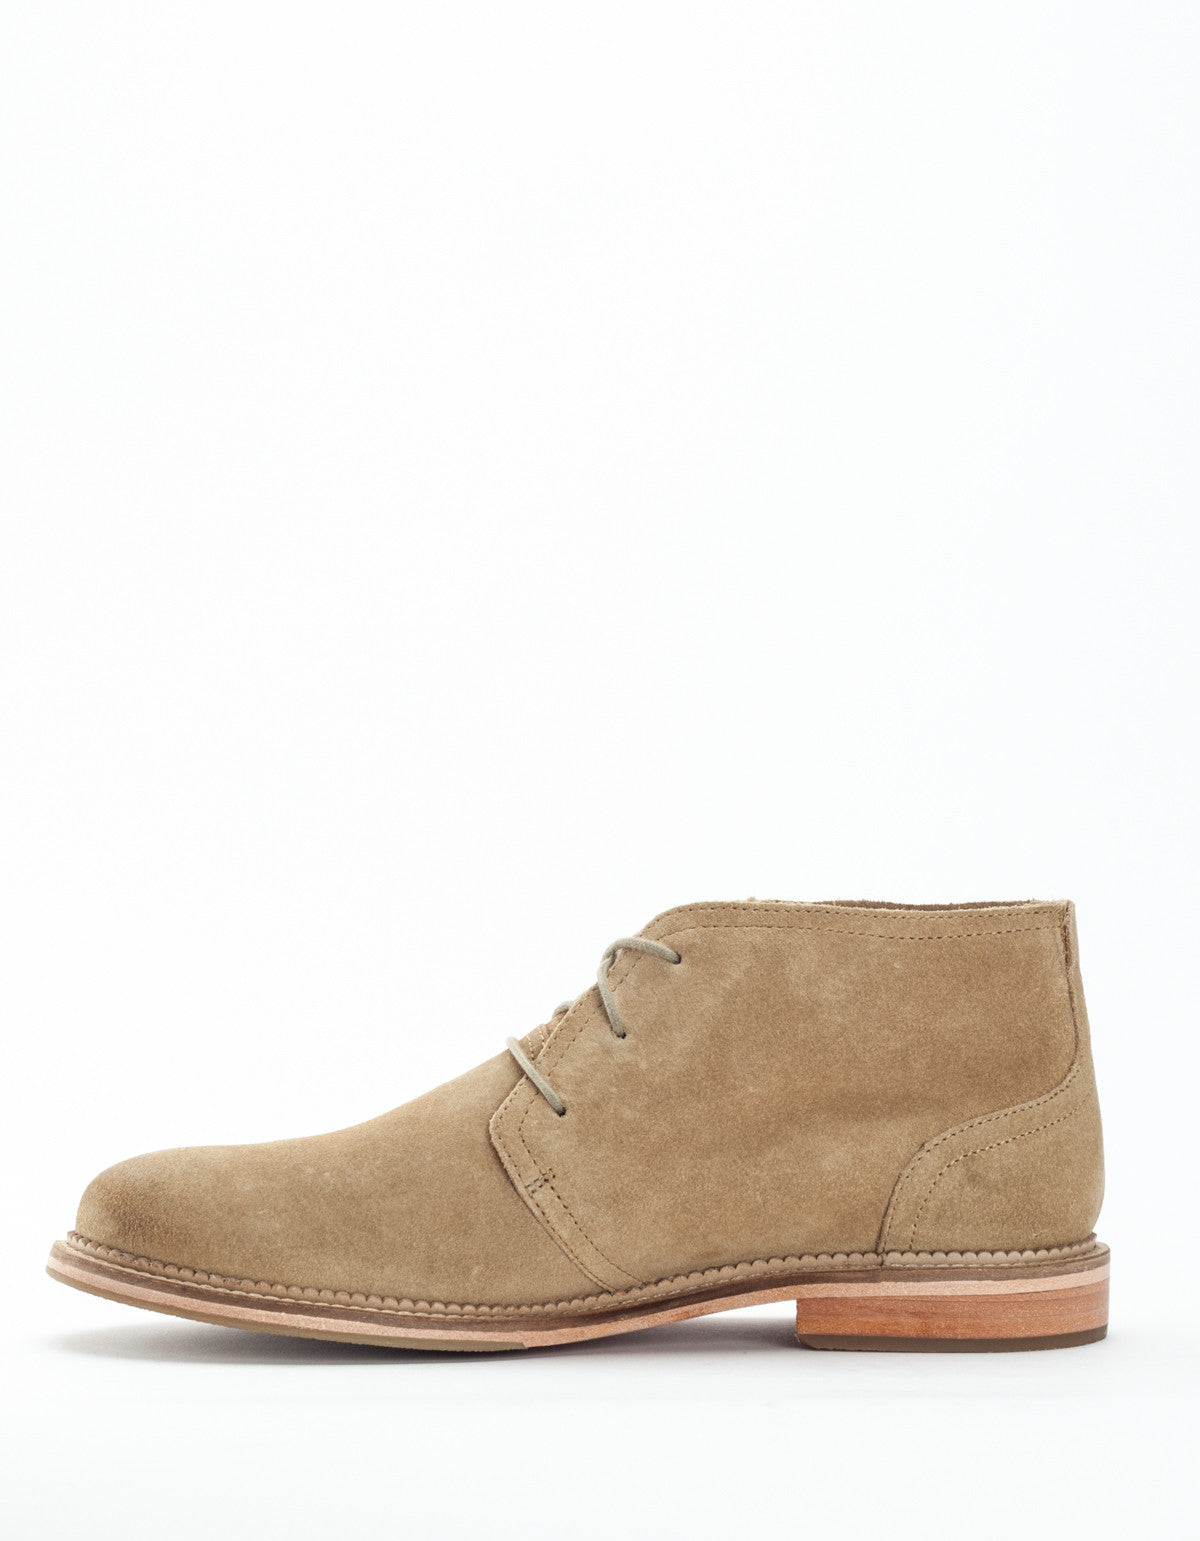 J Shoes Monarch Chukka Boot Studland